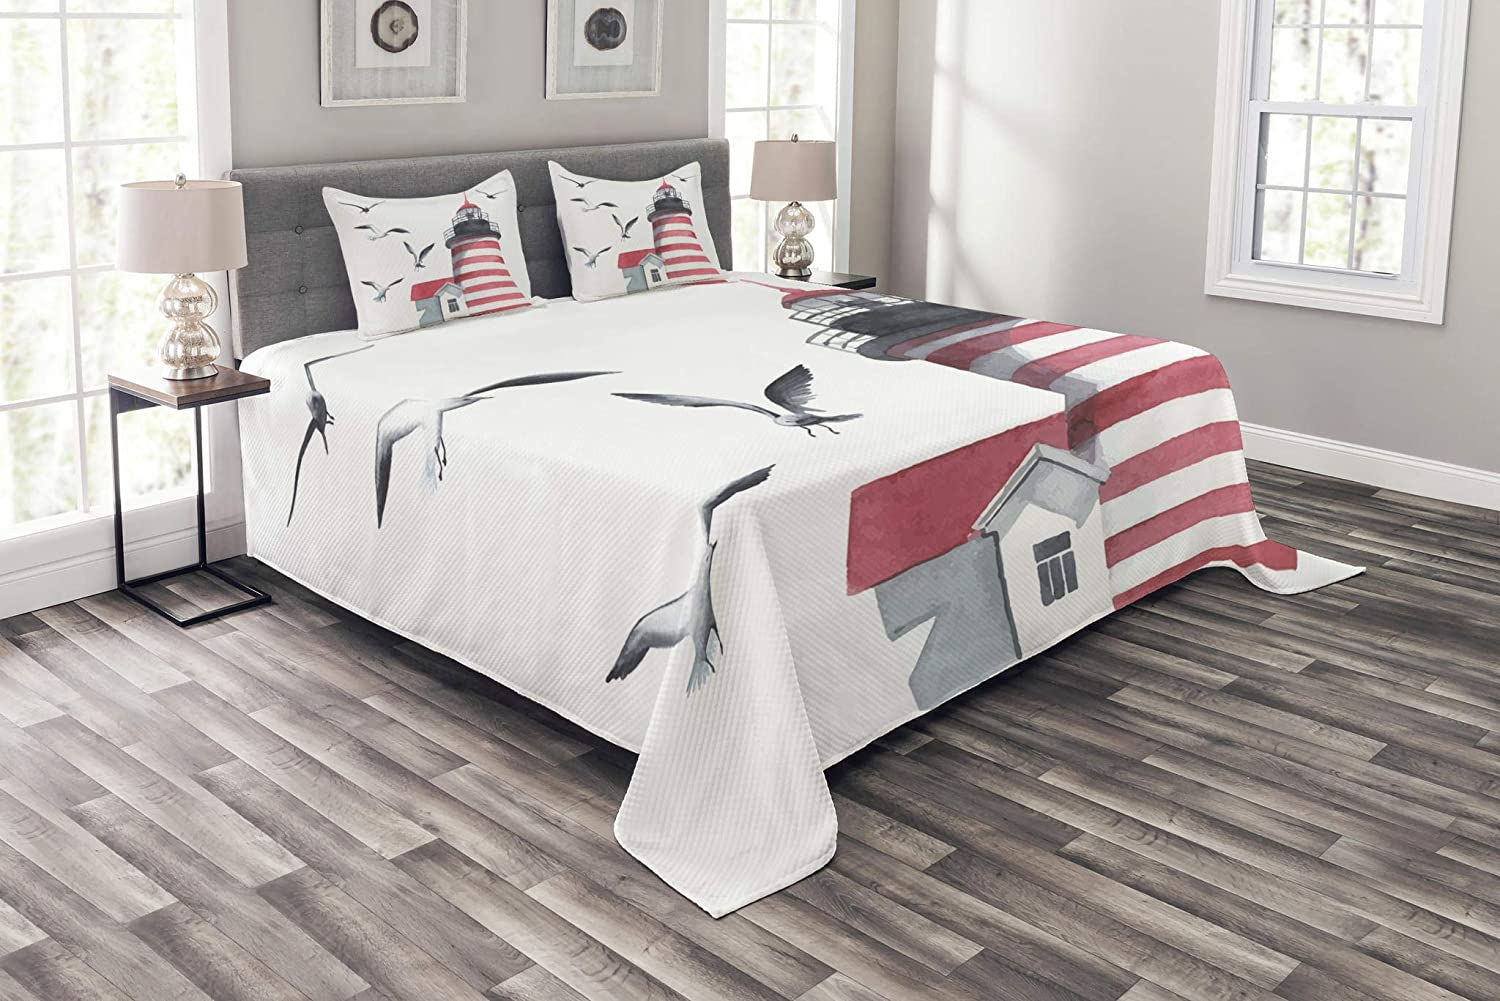 Ambesonne Latest item Lighthouse Bedspread and on 55% OFF The Seagulls B